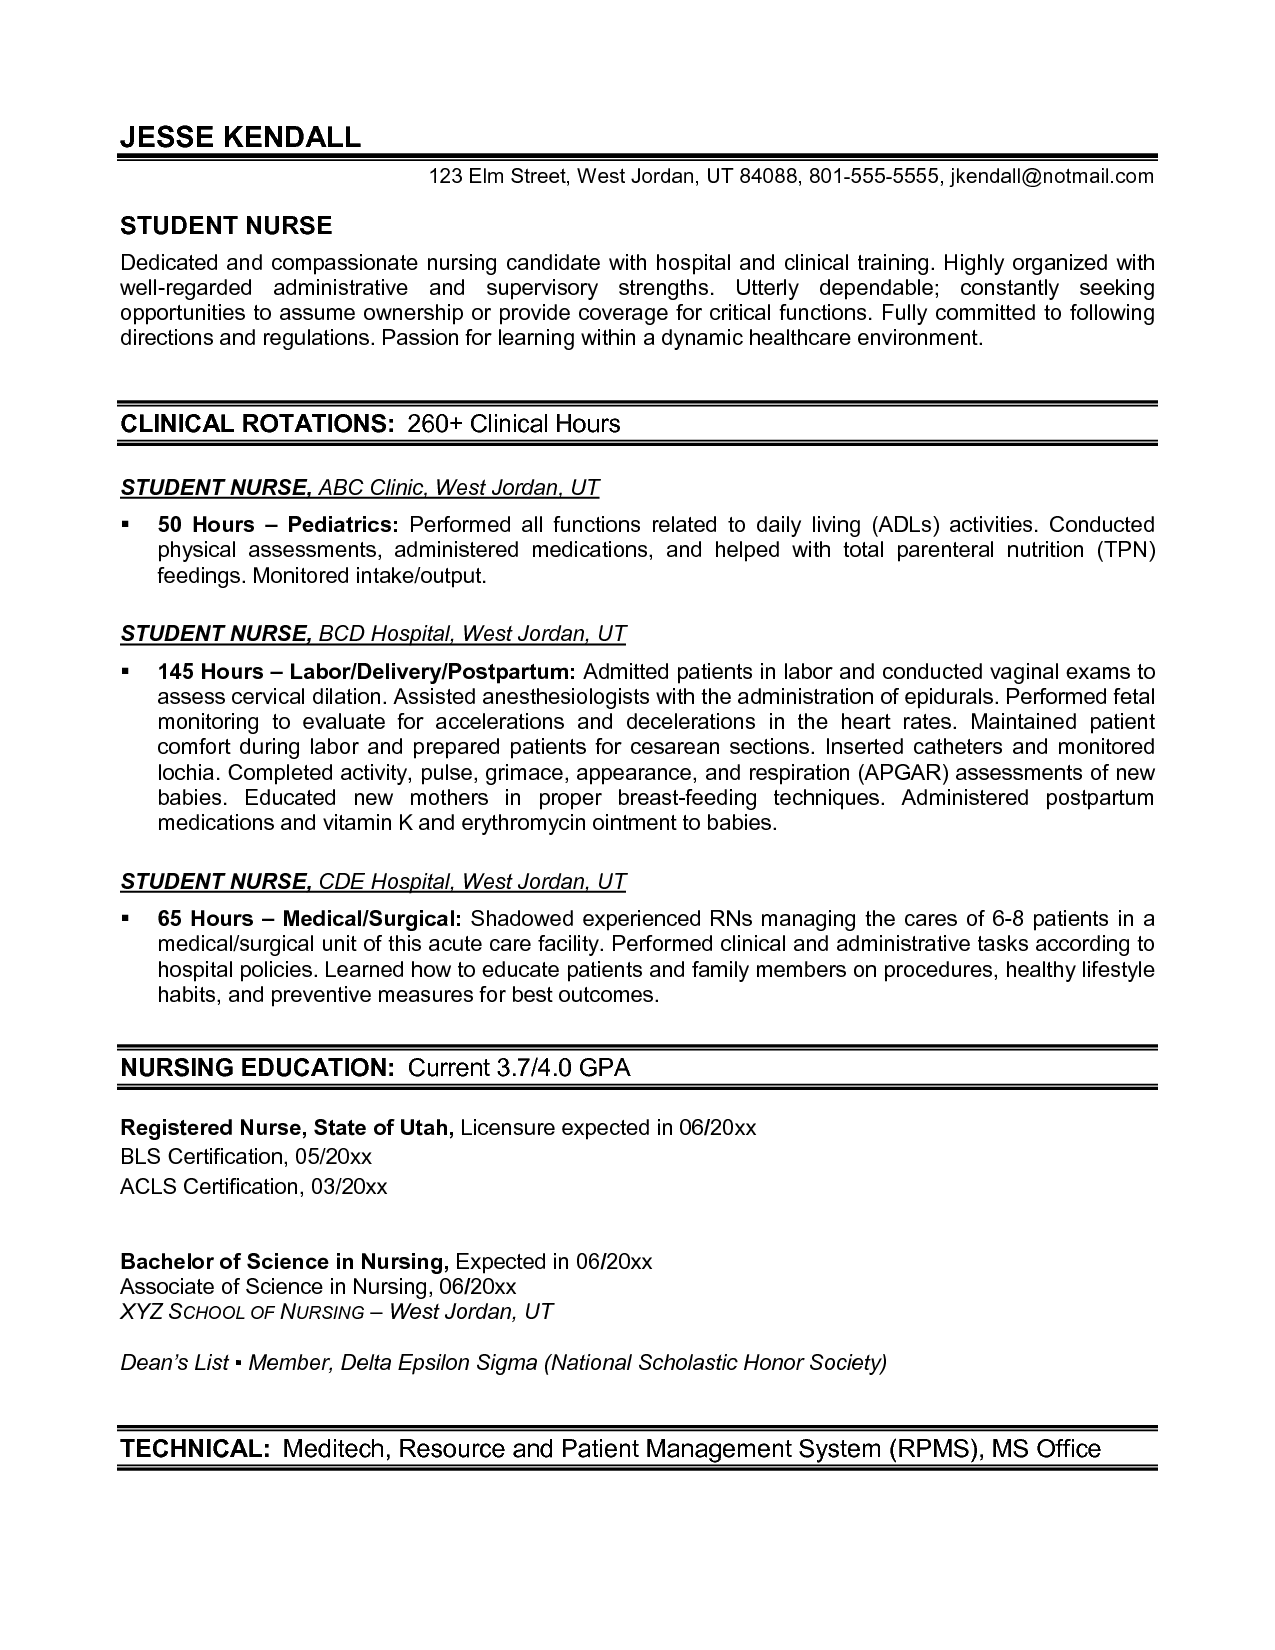 Resume Education Example Brilliant Resume Template Nursing  Nursing  Pinterest  Nursing Resume Design Decoration